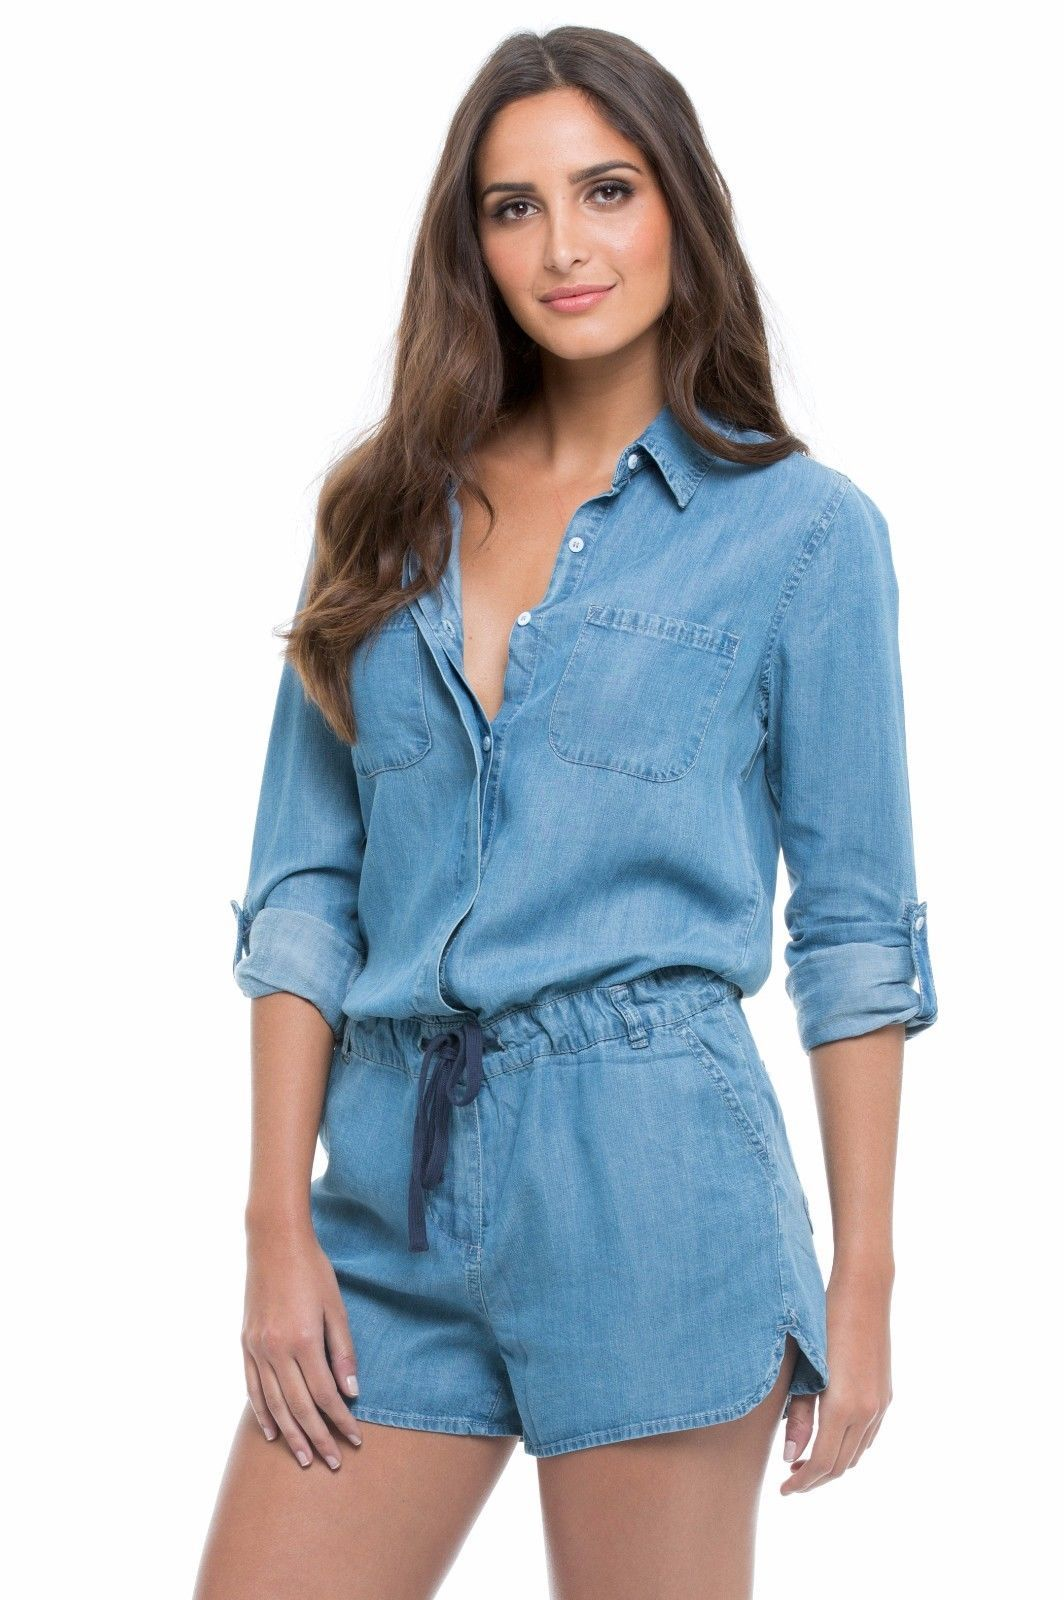 ea134201b19f Elan Tencel Long Sleeve Denim Romper W Convertible Sleeve Tie Waist  (Vt7075) S-L